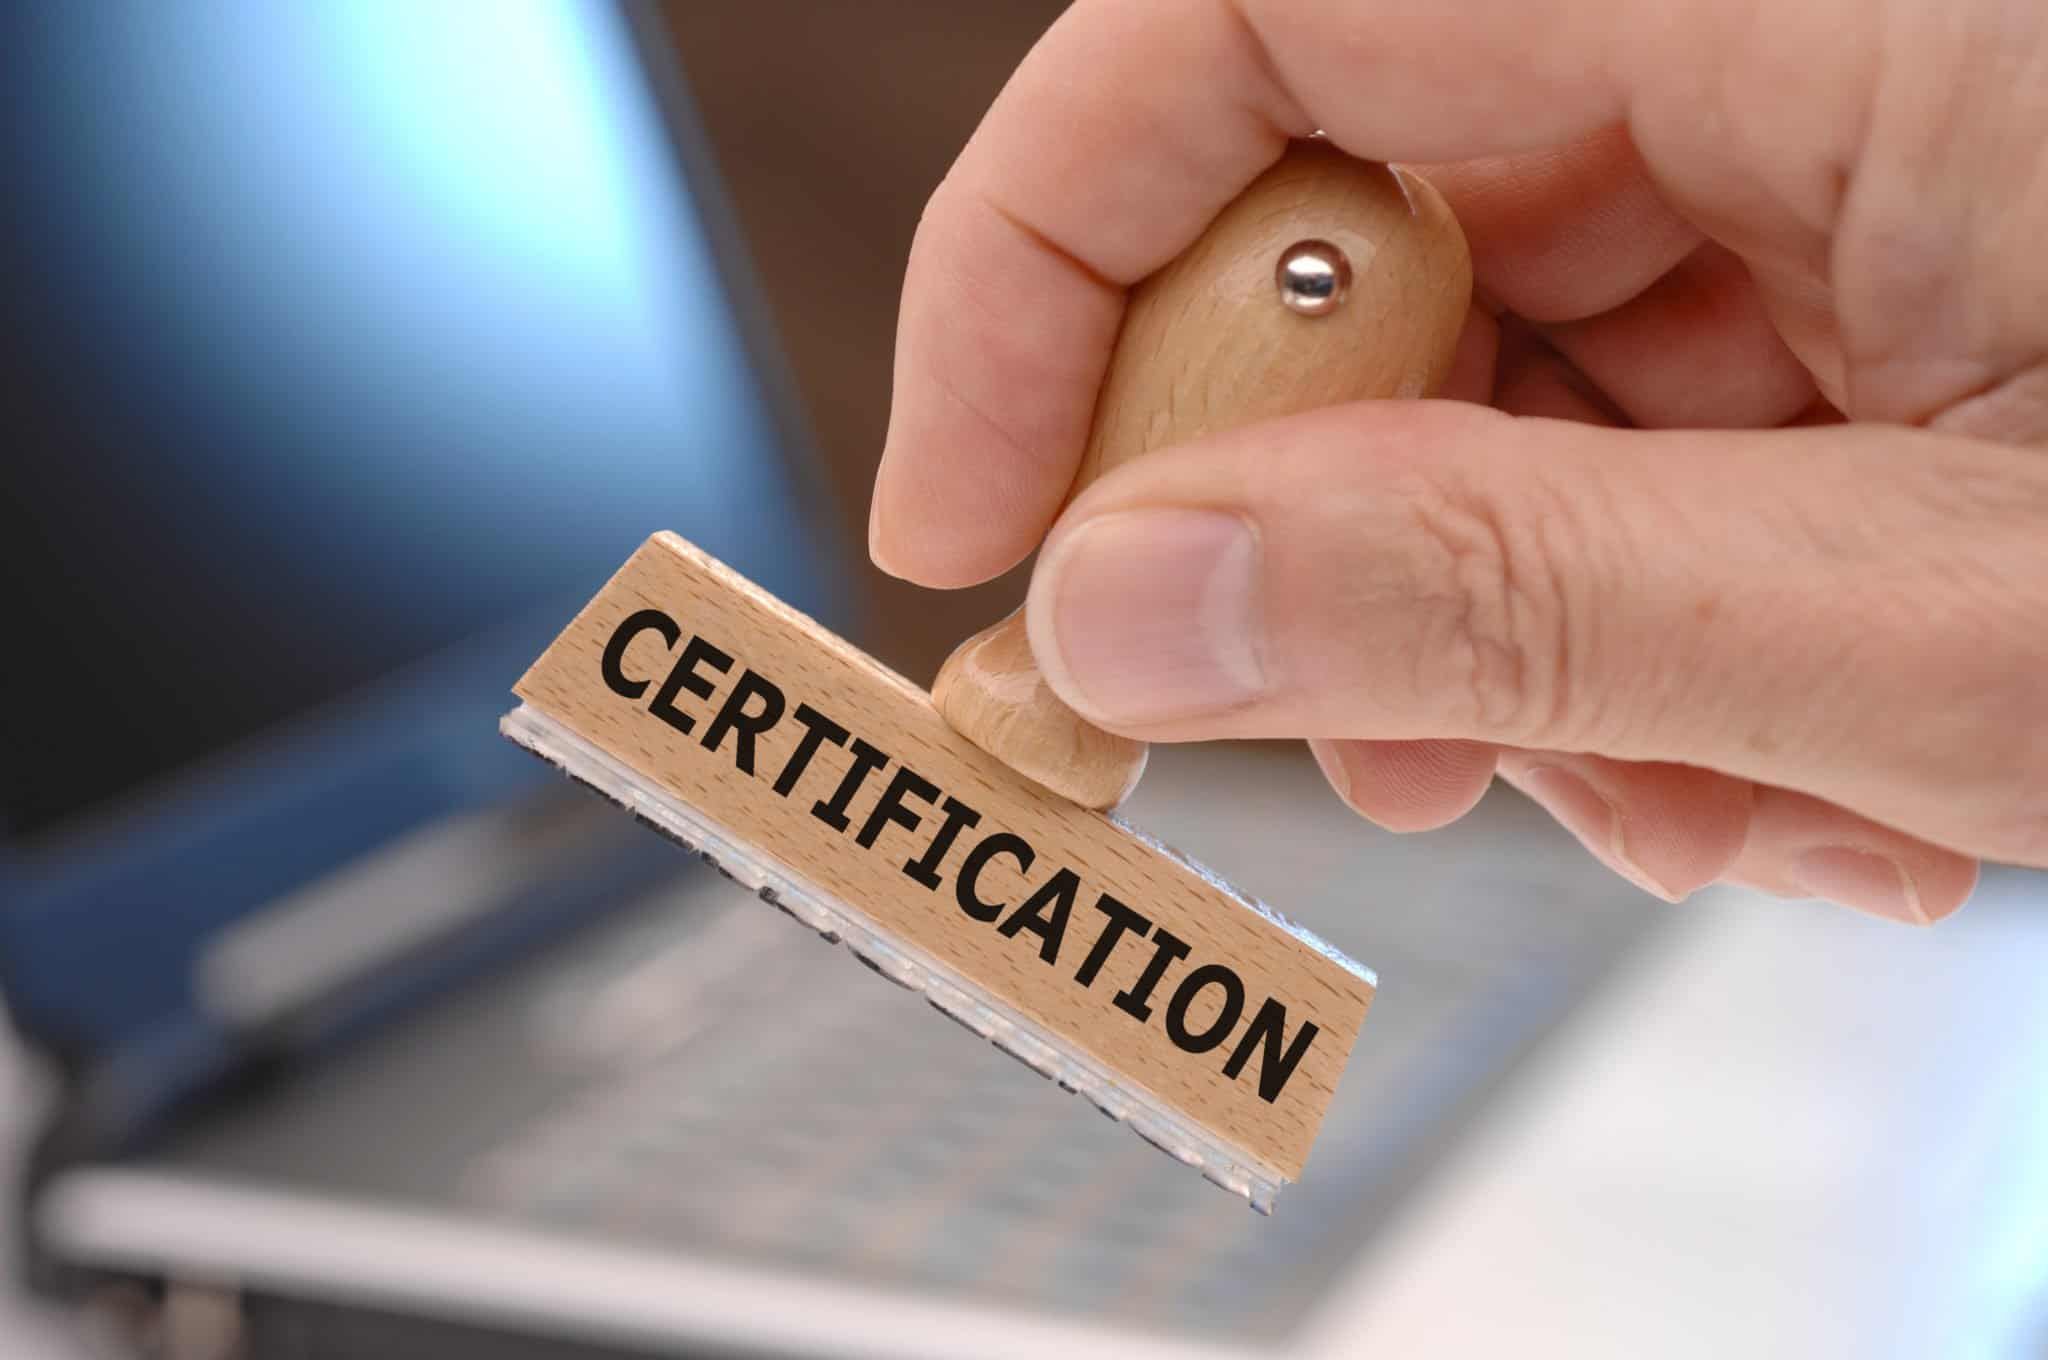 rubber stamp in hand marked with certification